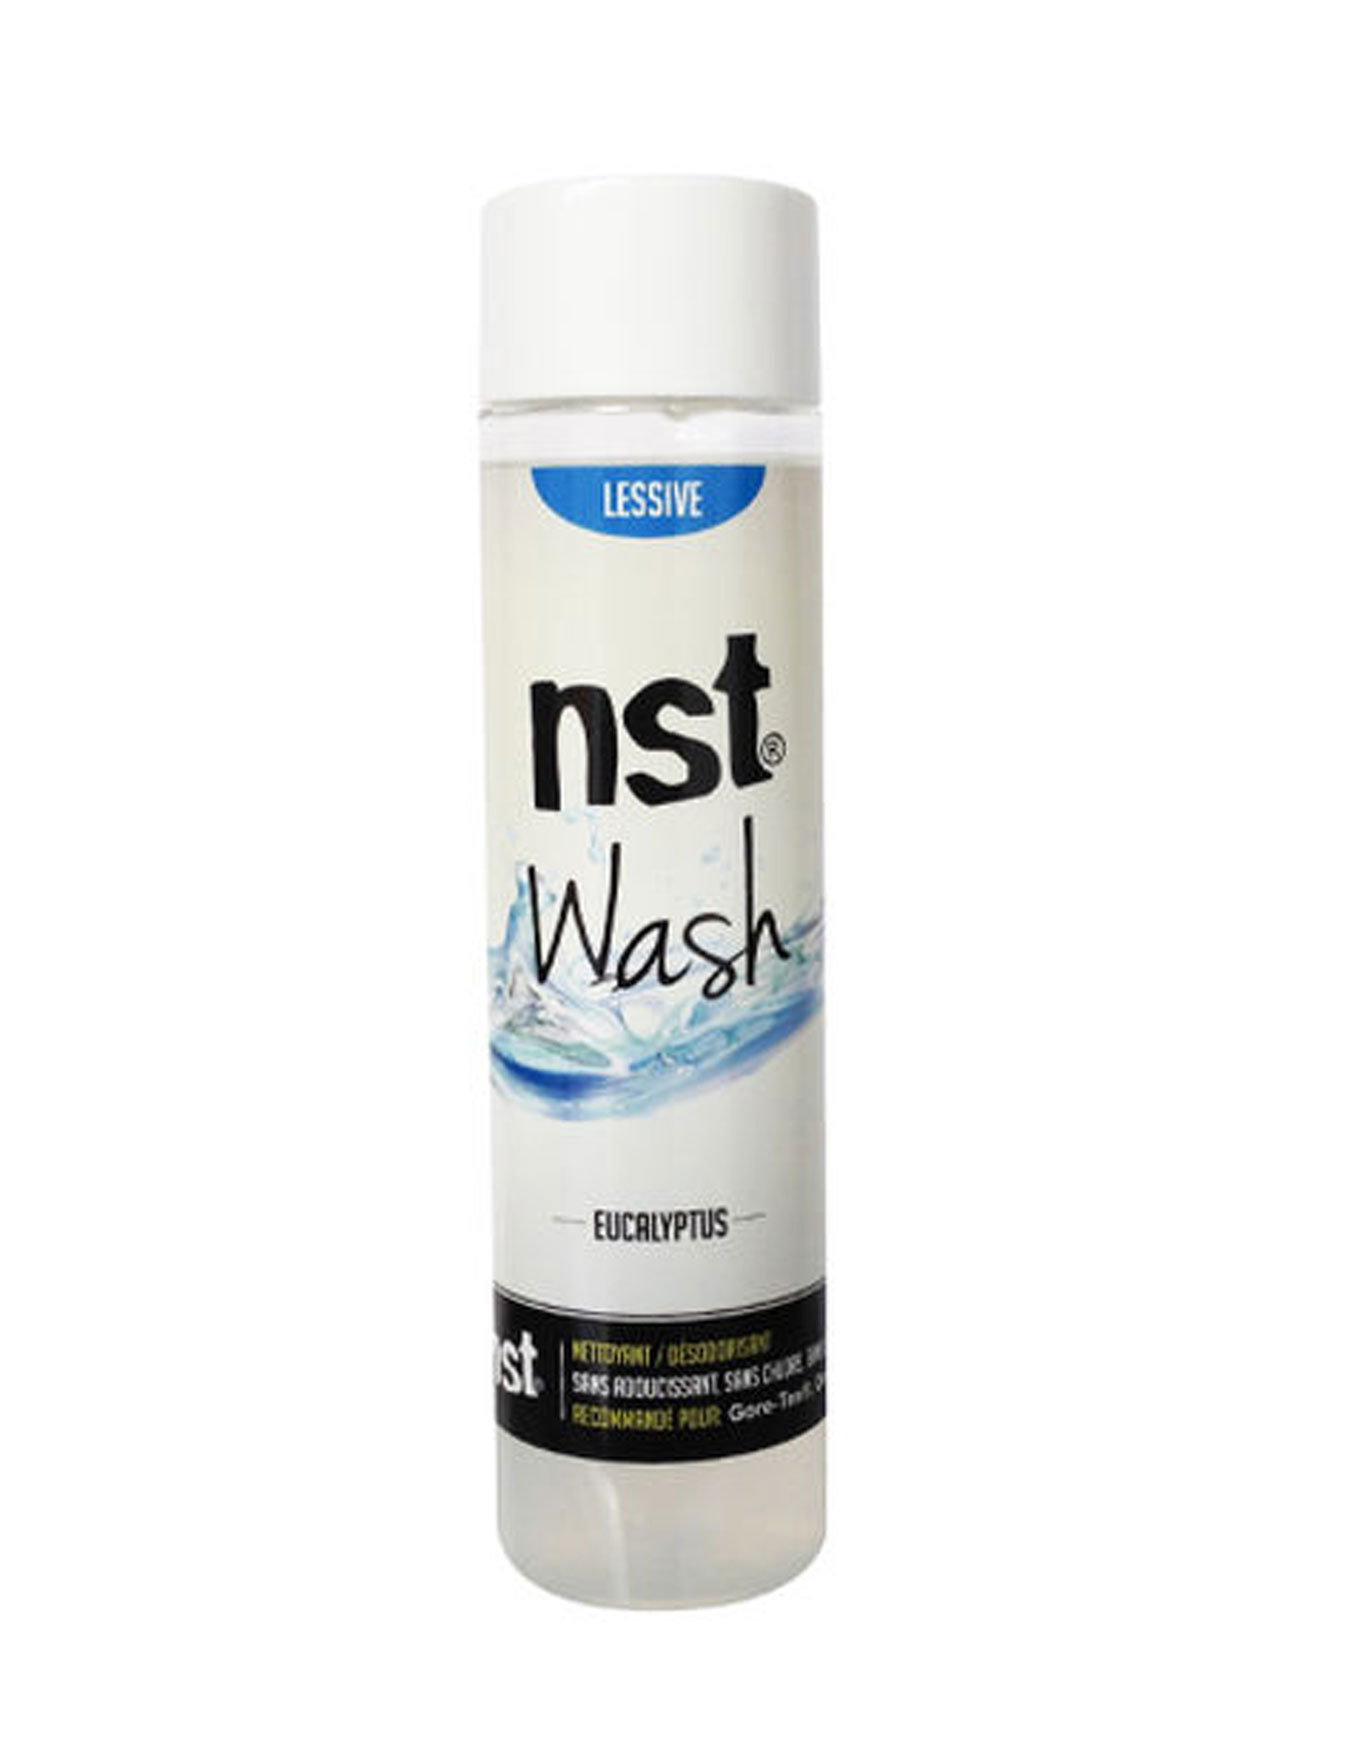 nst_wash_250_ml-simple-nstecoperf-nst_00006_1